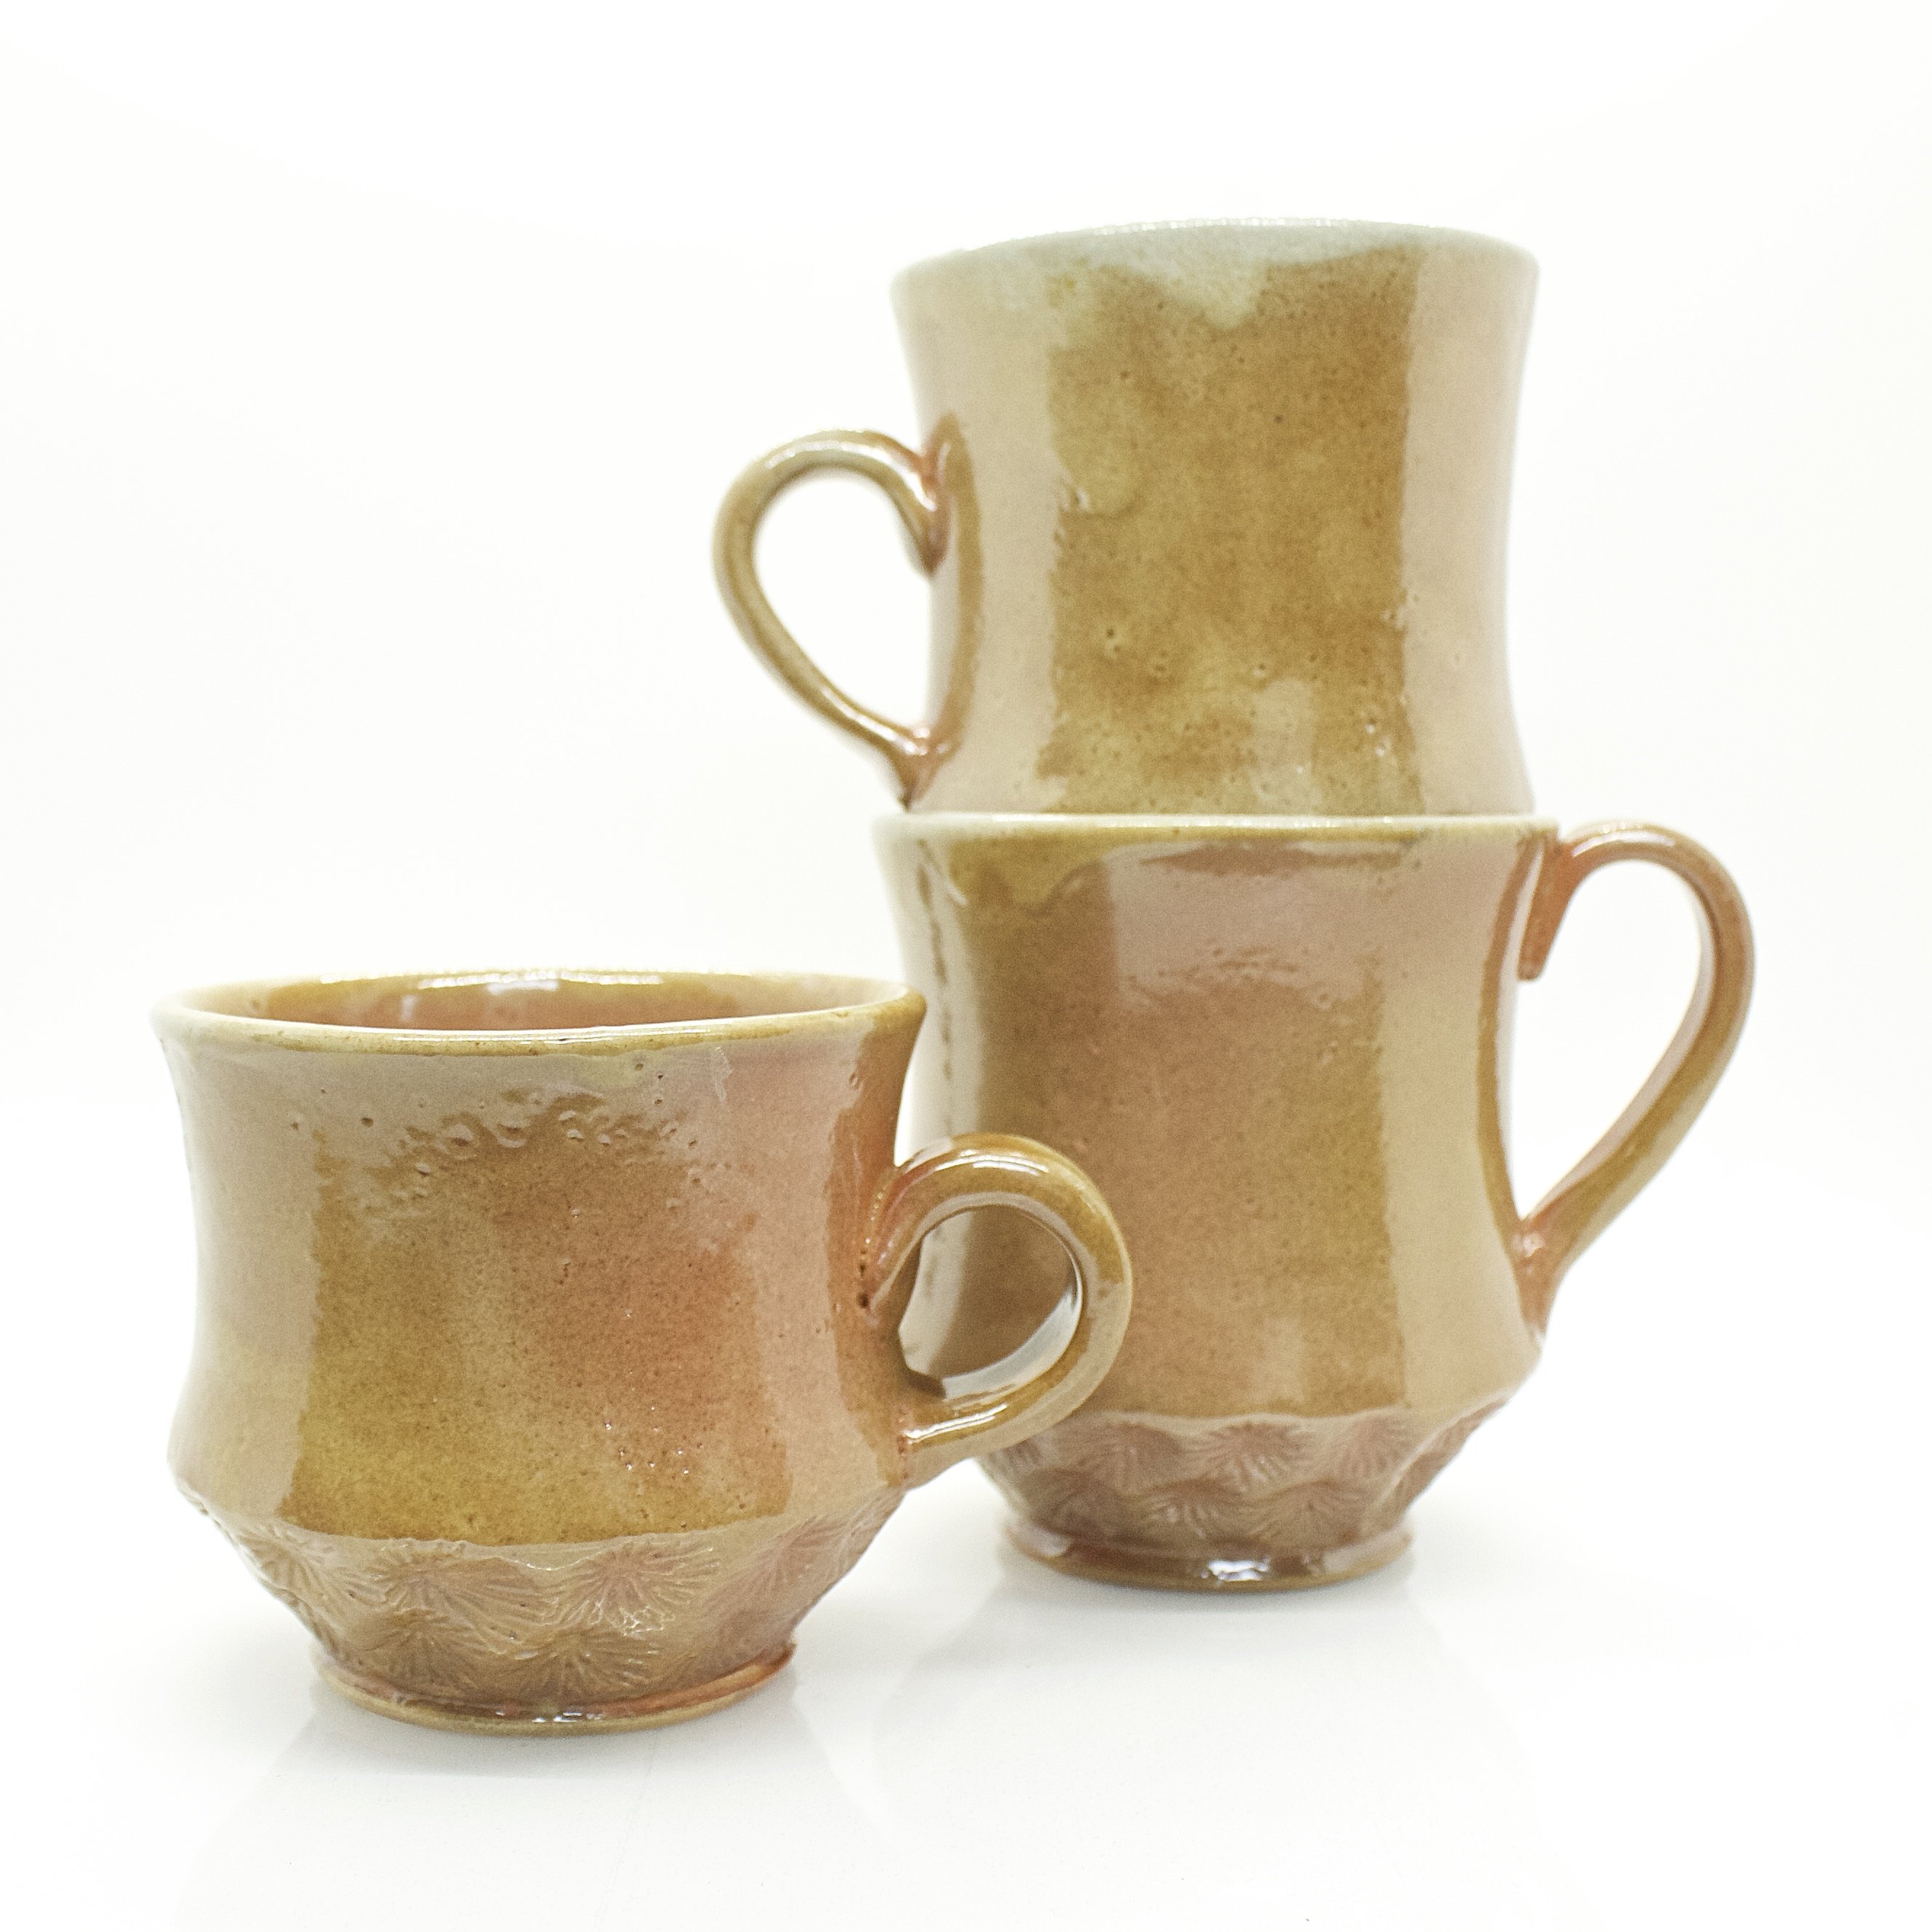 Soda fired mugs, 2019